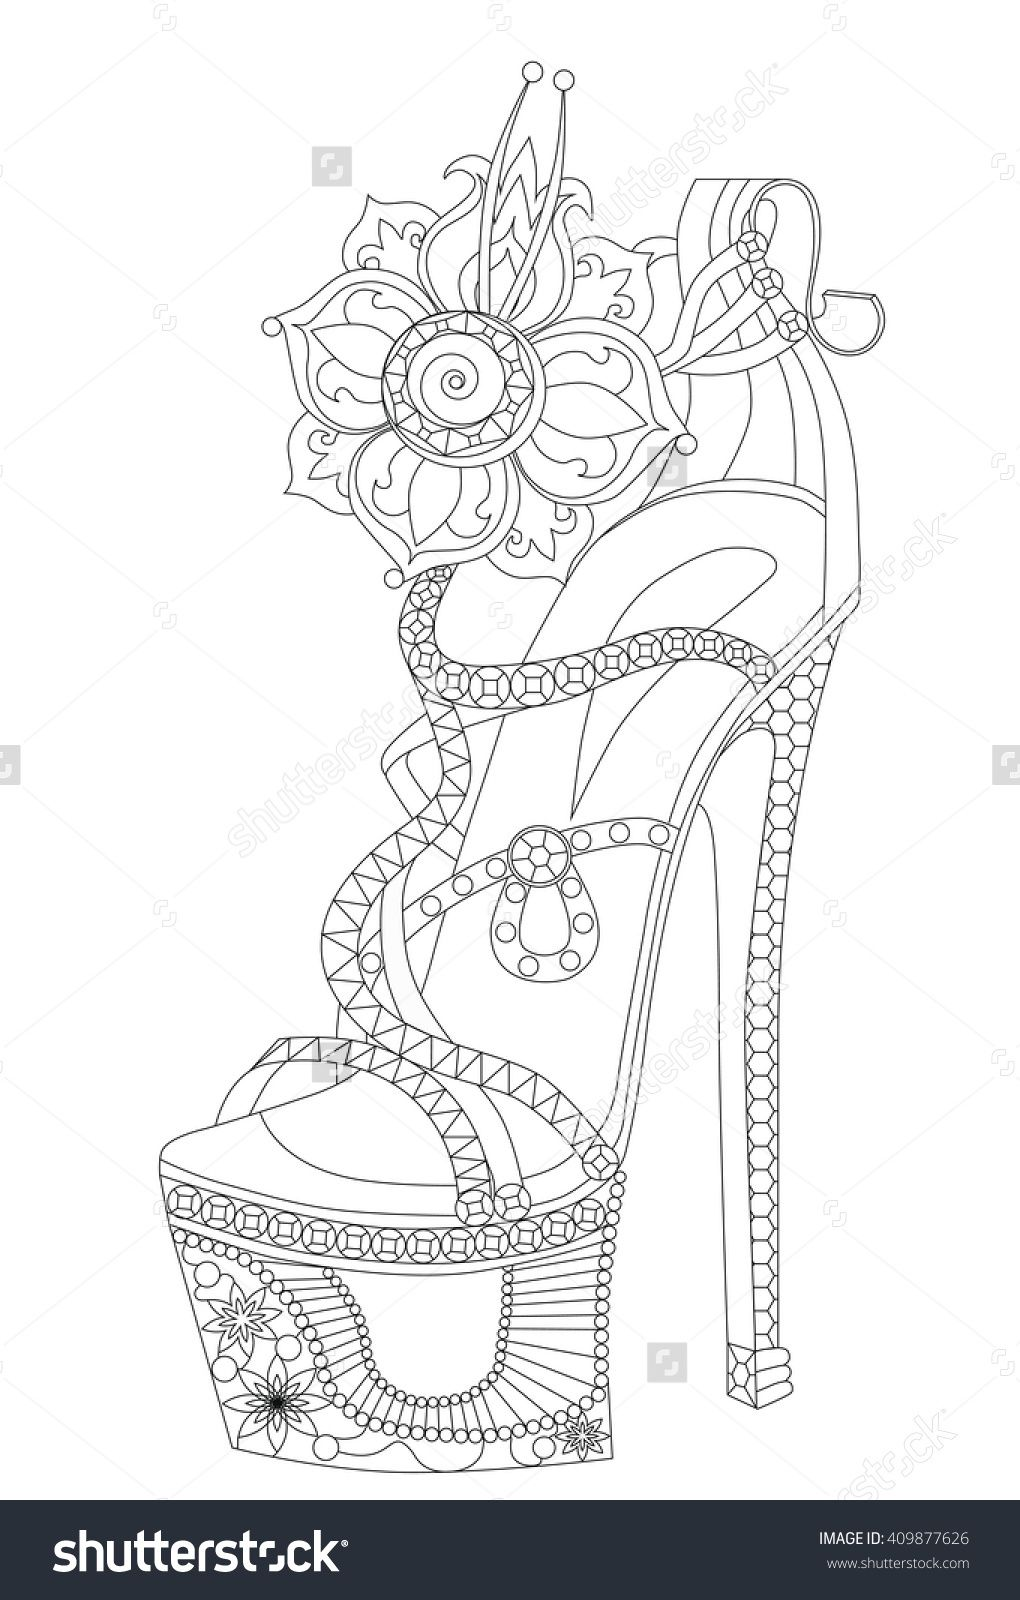 Shoe With Flowers Coloring Books For Adults Vektorova Ilustrace 409877626 Shutterstock Coloring Books Fairy Coloring Free Printable Coloring Pages